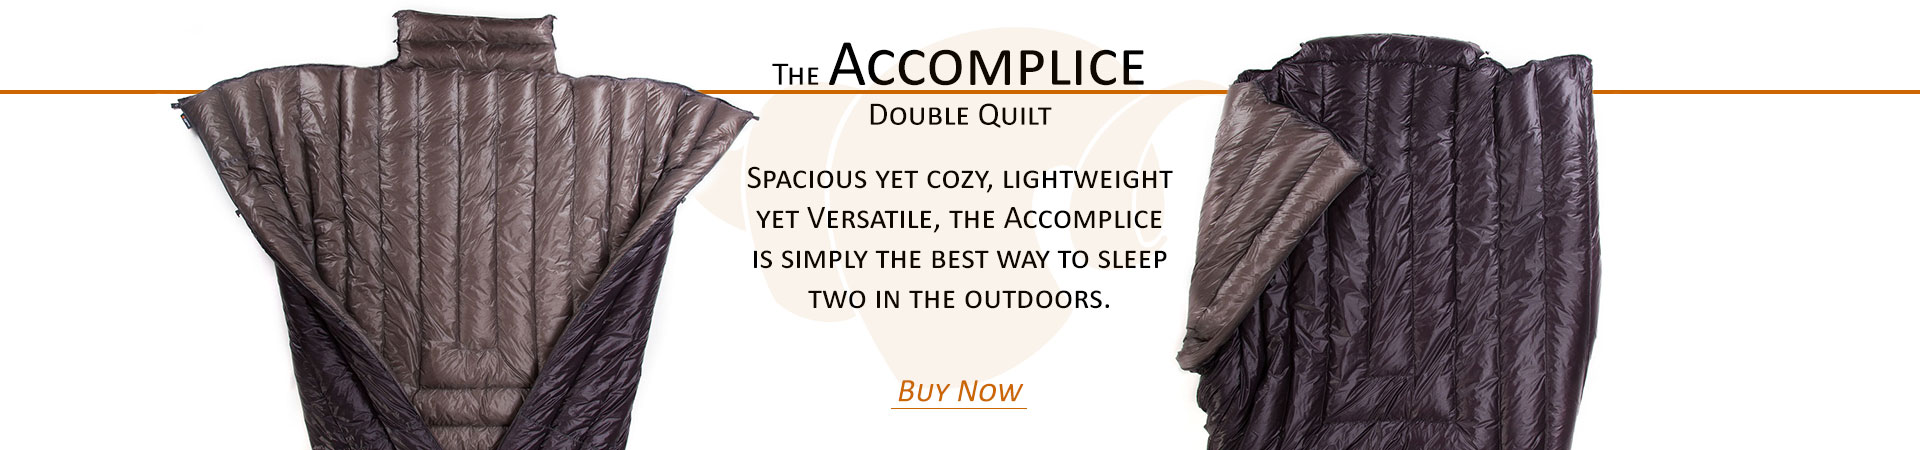 The Accomplice Double Quilt: Spacious yet cozy, lightweight yet versatile, the accomplice is simply the best way to sleep two in the outdoors.